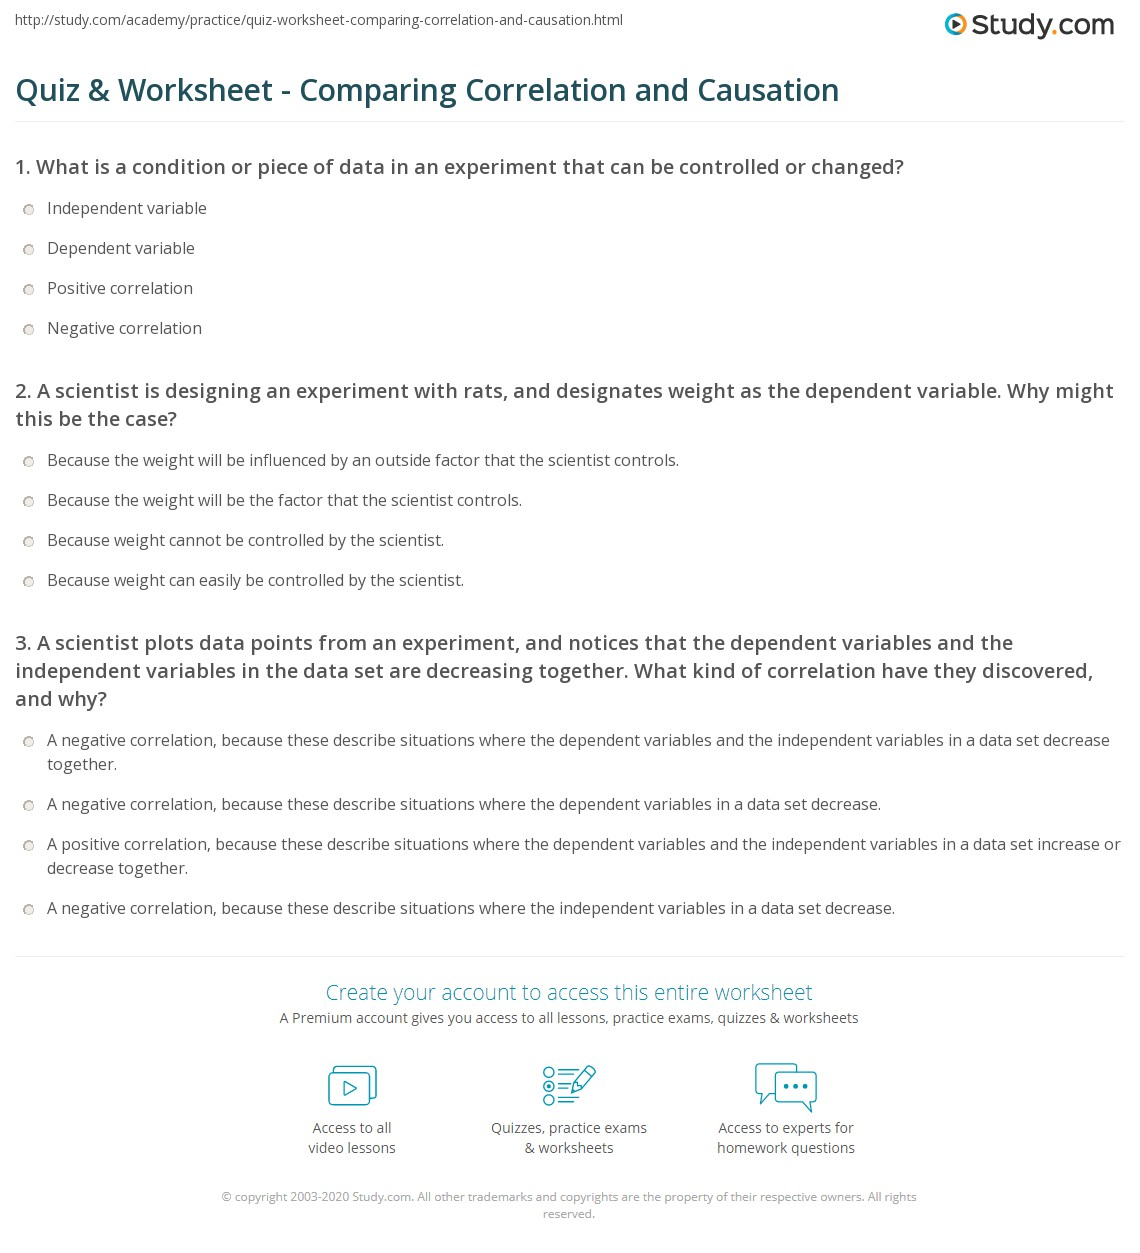 Aldiablosus  Unique Quiz Amp Worksheet  Comparing Correlation And Causation  Studycom With Lovely Print Correlation Vs Causation Differences Amp Definition Worksheet With Delightful Chemistry Molecular Formula Worksheet Answers Also Free Connect The Dots Printable Worksheets In Addition Free Printables Worksheets For Kindergarten And Math Grouping Worksheets As Well As Click Clack Moo Worksheets Additionally Decimal Models Worksheets From Studycom With Aldiablosus  Lovely Quiz Amp Worksheet  Comparing Correlation And Causation  Studycom With Delightful Print Correlation Vs Causation Differences Amp Definition Worksheet And Unique Chemistry Molecular Formula Worksheet Answers Also Free Connect The Dots Printable Worksheets In Addition Free Printables Worksheets For Kindergarten From Studycom